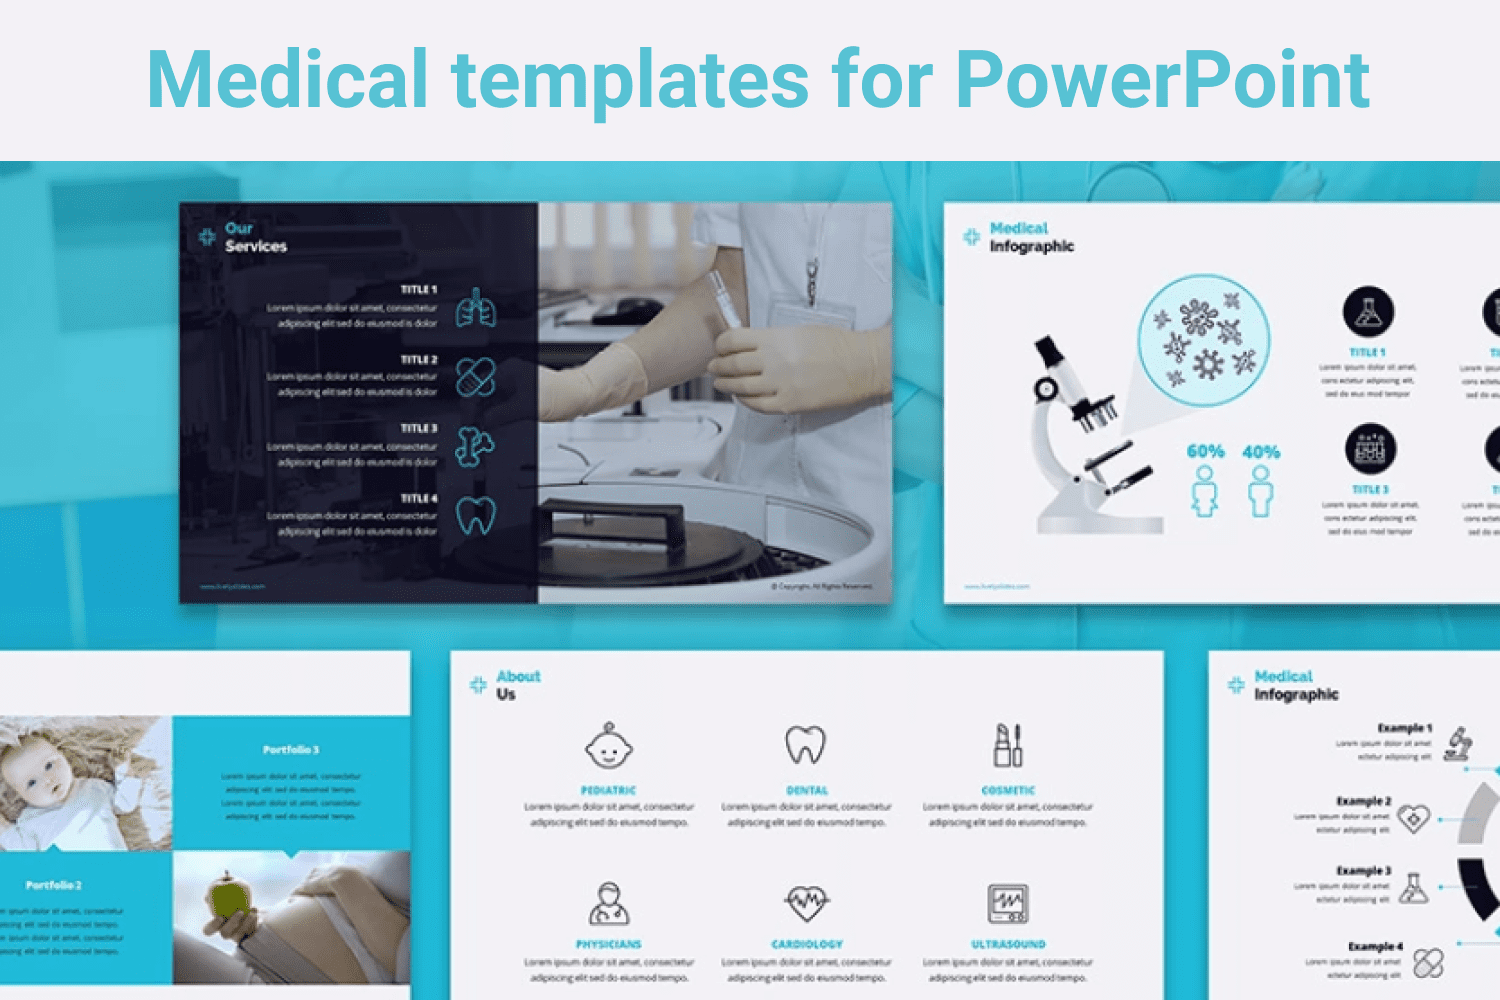 Blue template with a collection of medical icons that will dilute the text of the presentation.